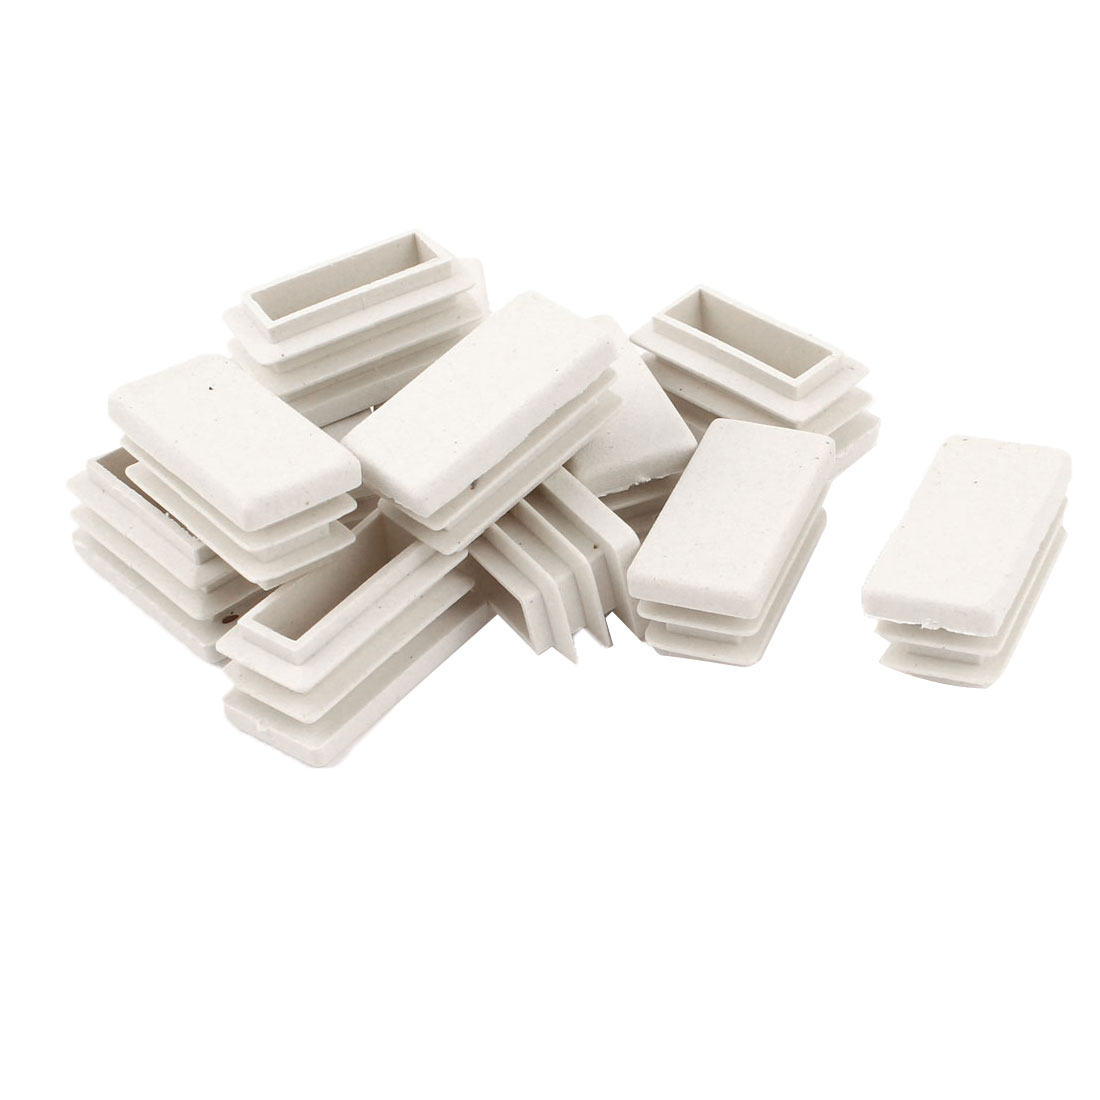 12 Pcs White Plastic Rectangle Blanking End Caps Tubing Tube Inserts 15mm x 30mm